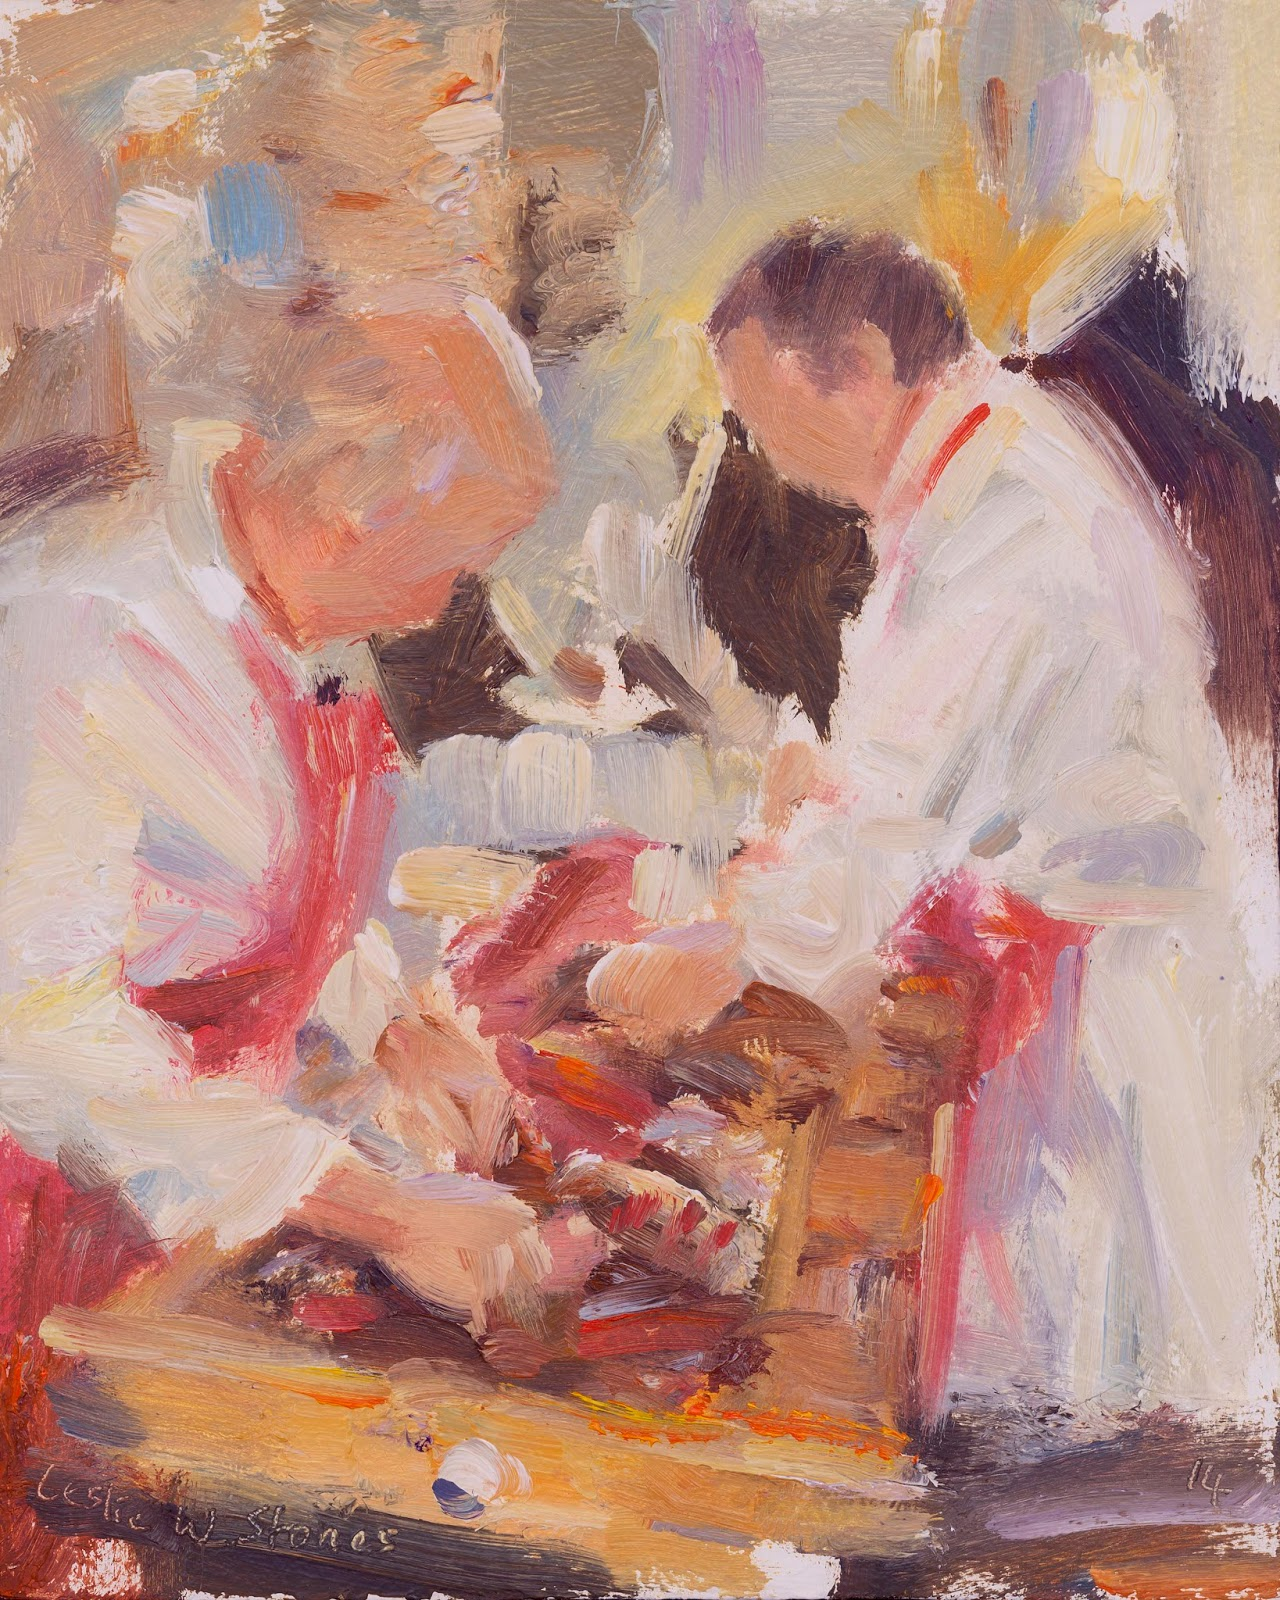 Painting of 2 butchers